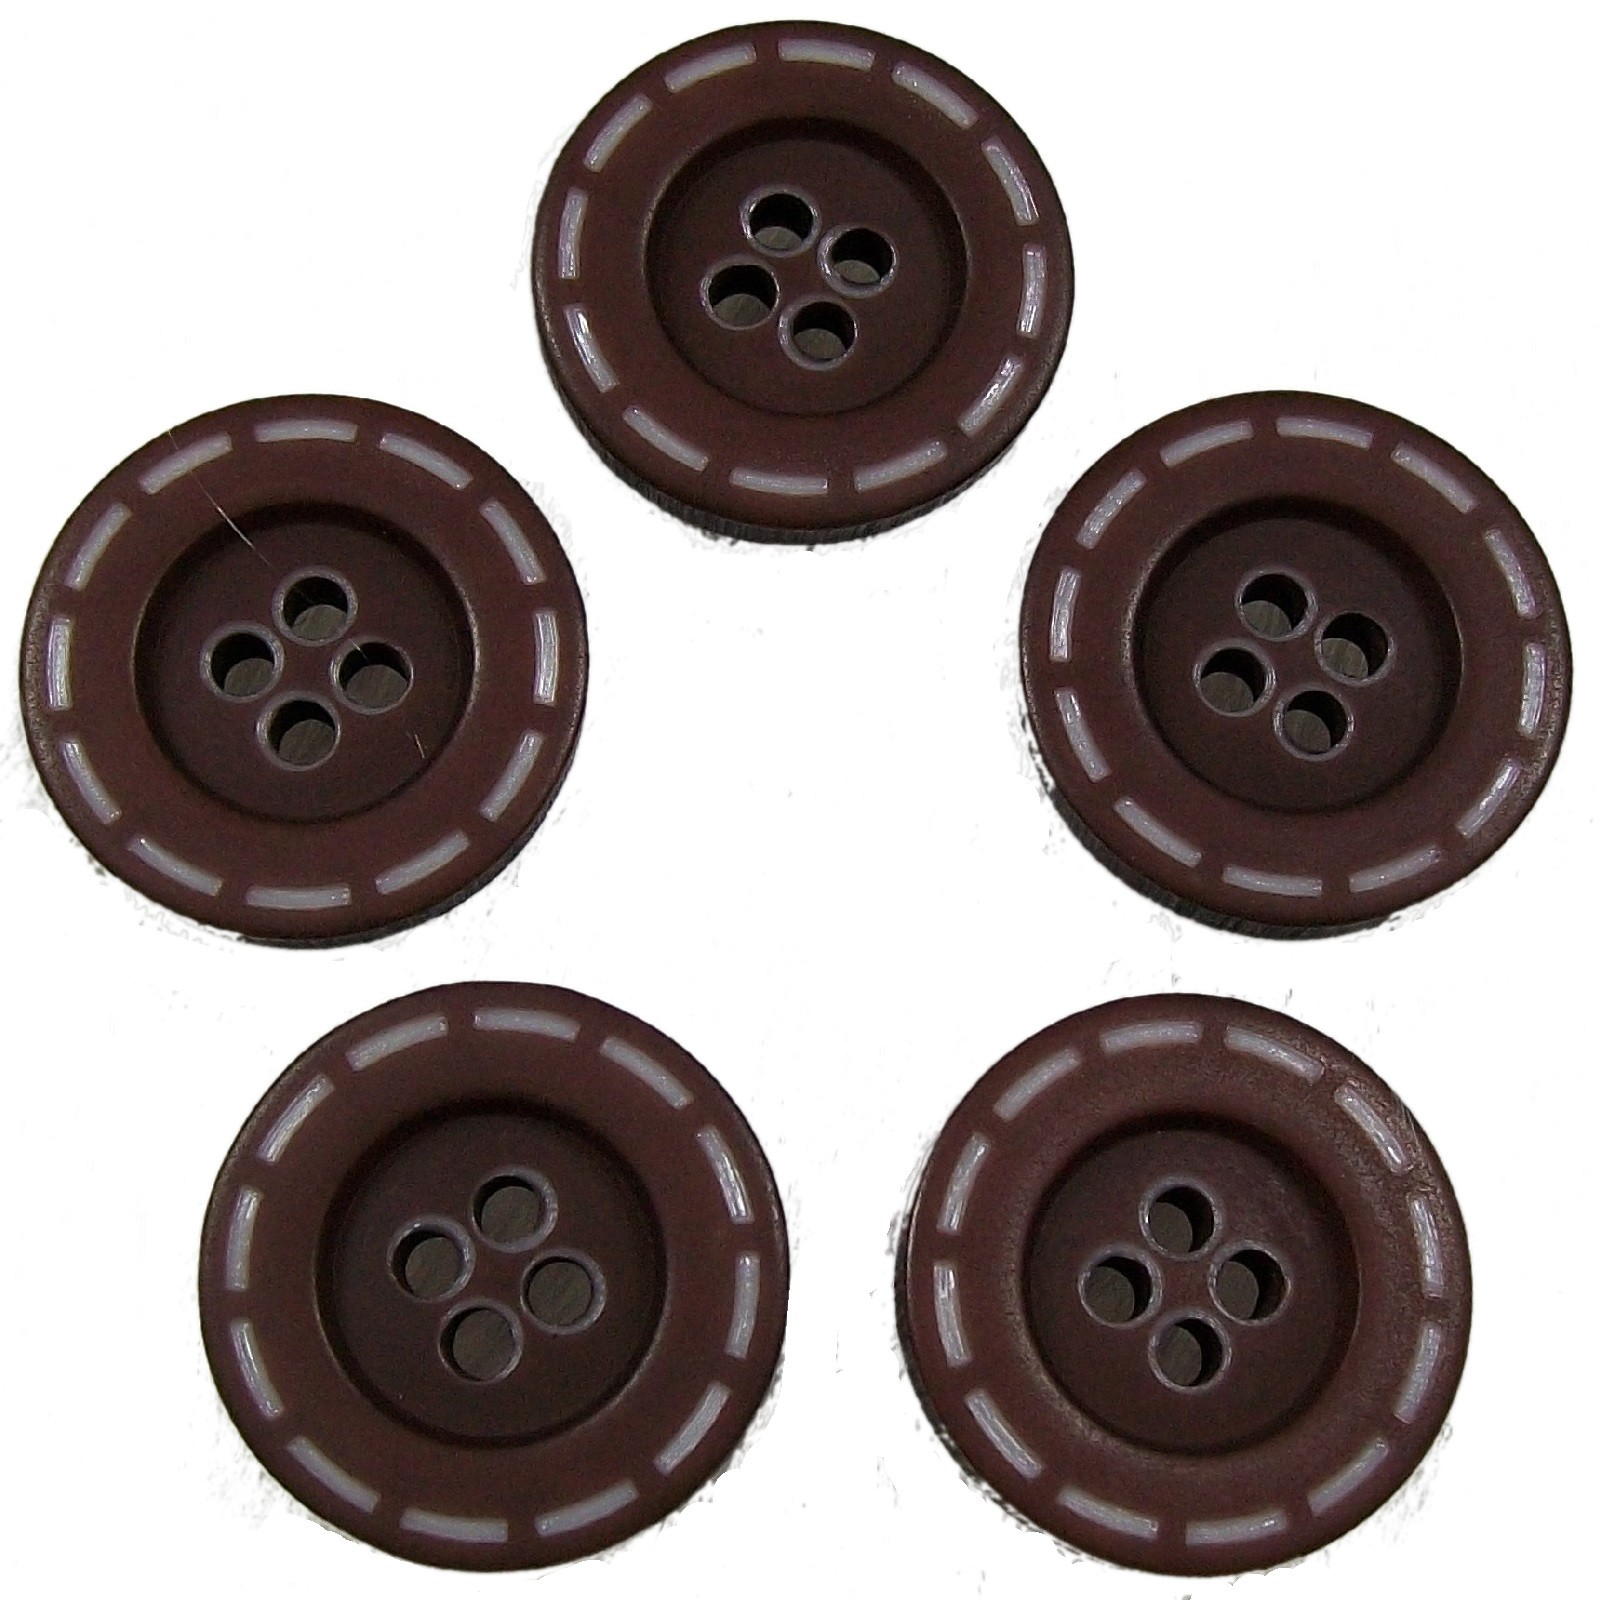 Stitched Edge Effect 4 Hole Buttons 17mm Dark Brown Pack of 5